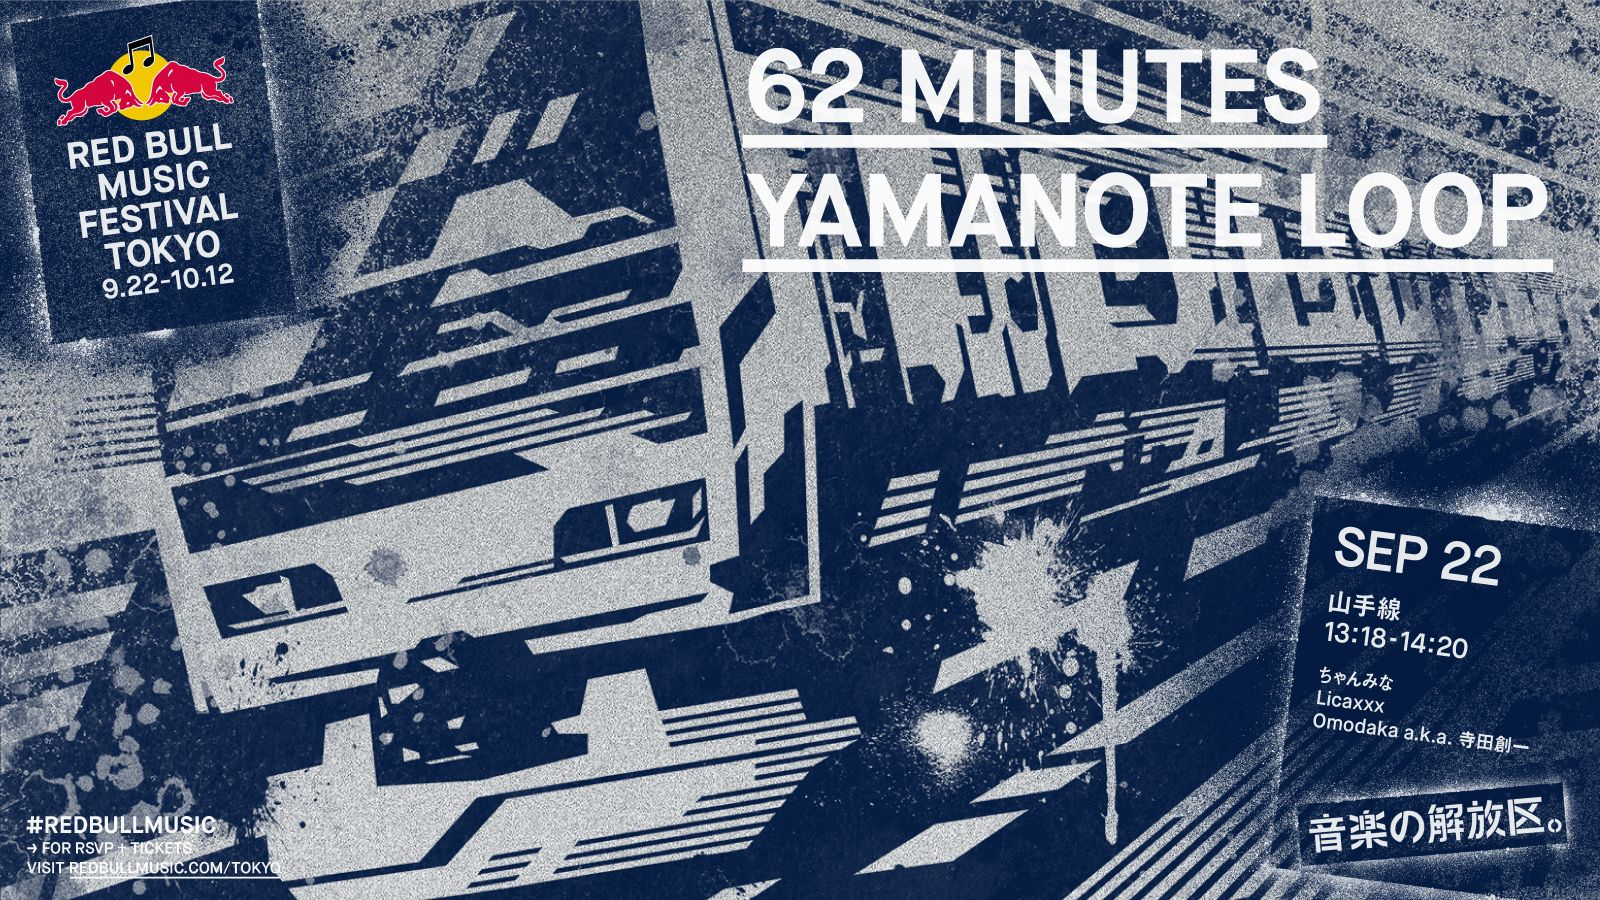 RED BULL MUSIC FESTIVAL TOKYO 2018 - 62 MINUTES YAMANOTE LOOP -